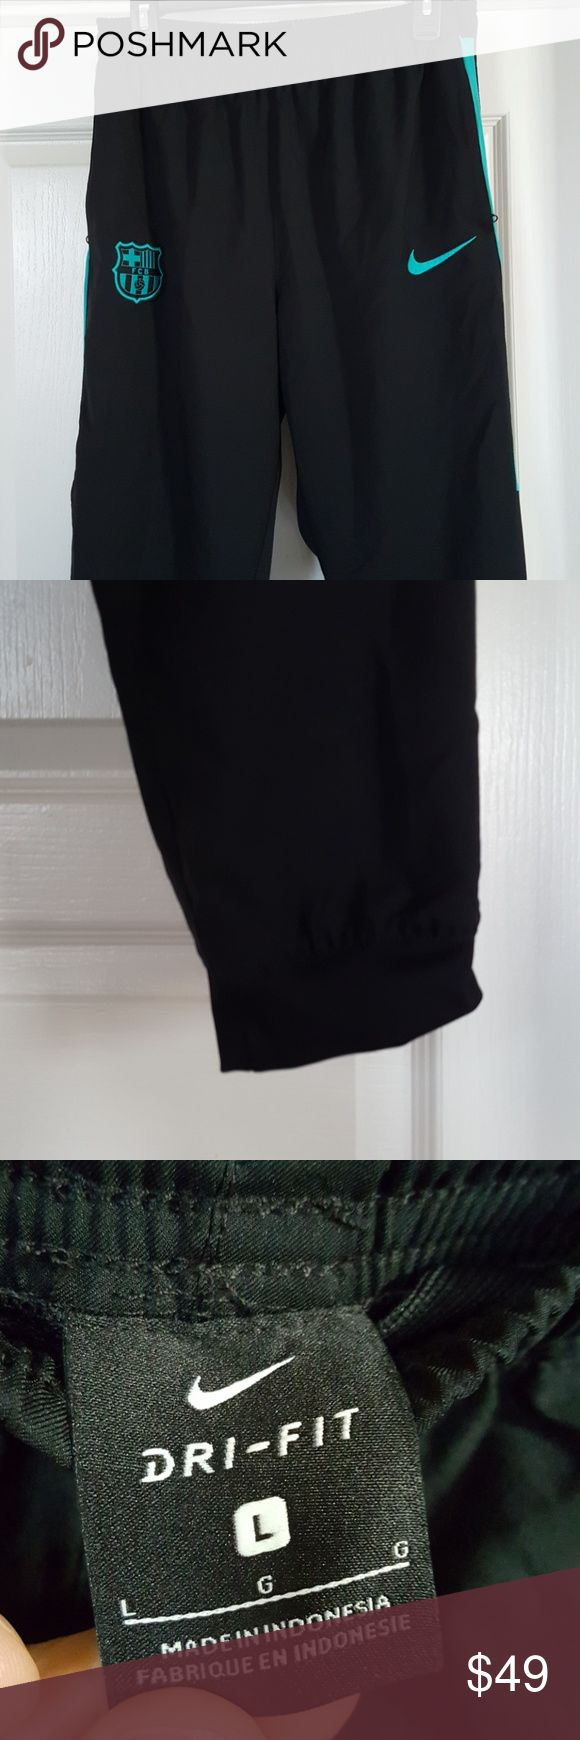 Nike dri fit FC Barcelona training pants large EUC no snags or holes or stains  Soccer training pants, like joggers. Nike Pants Sweatpants & Joggers